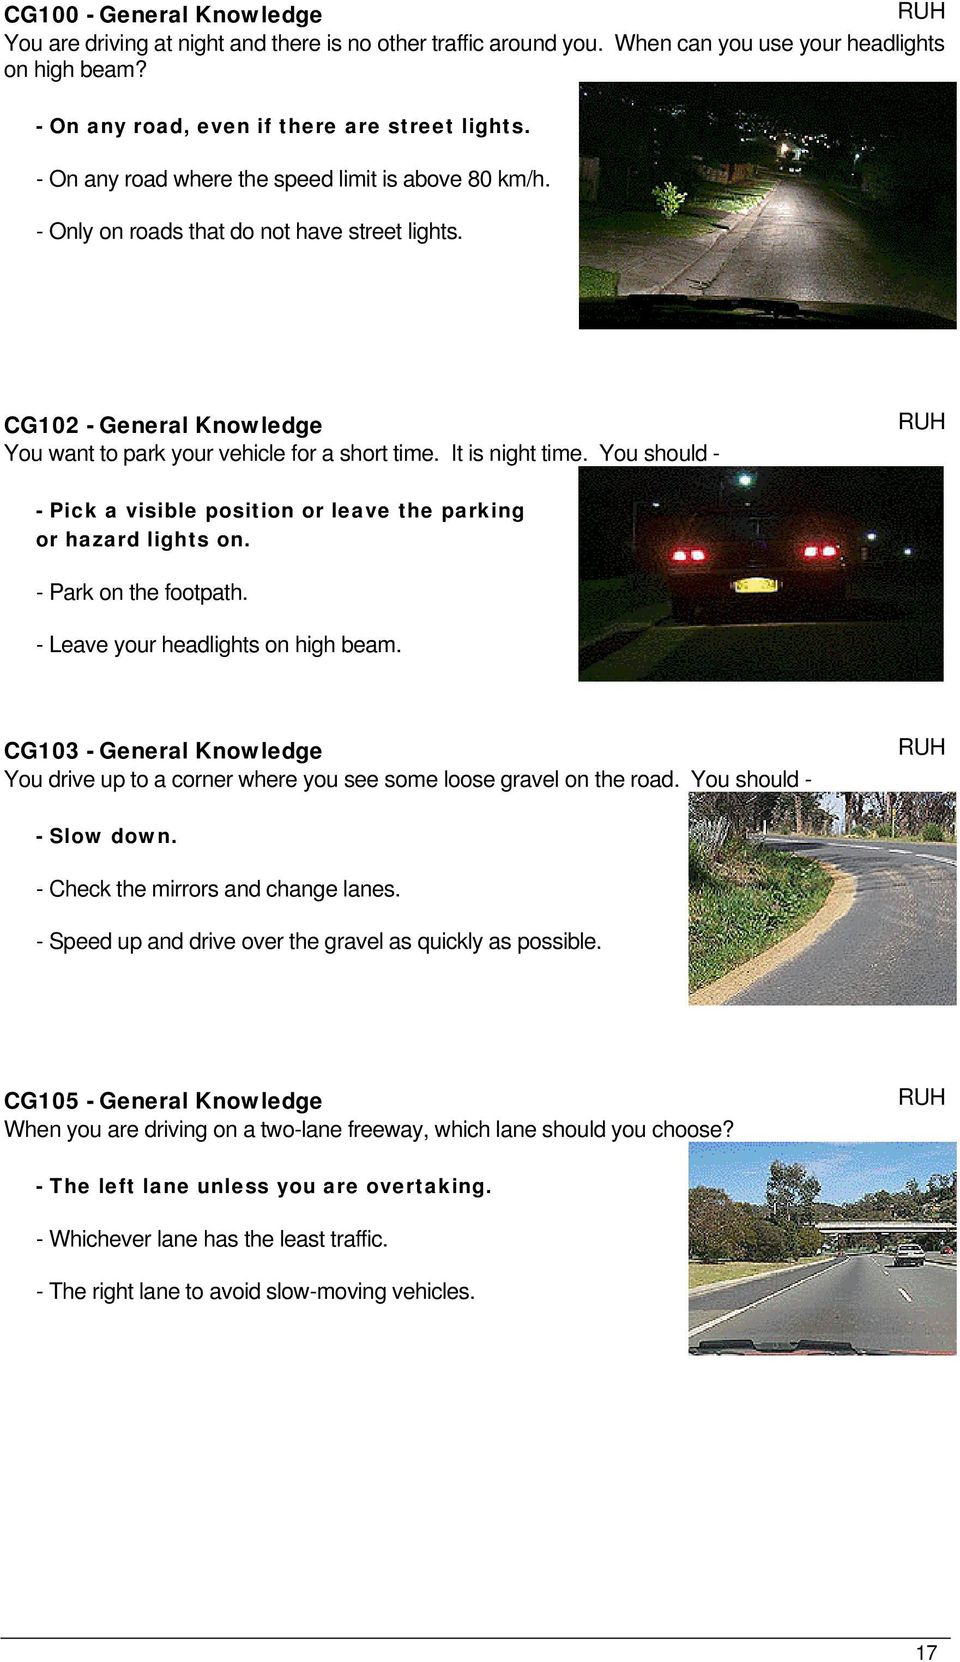 You should - - Pick a visible position or leave the parking or hazard lights on. - Park on the footpath. - Leave your headlights on high beam.